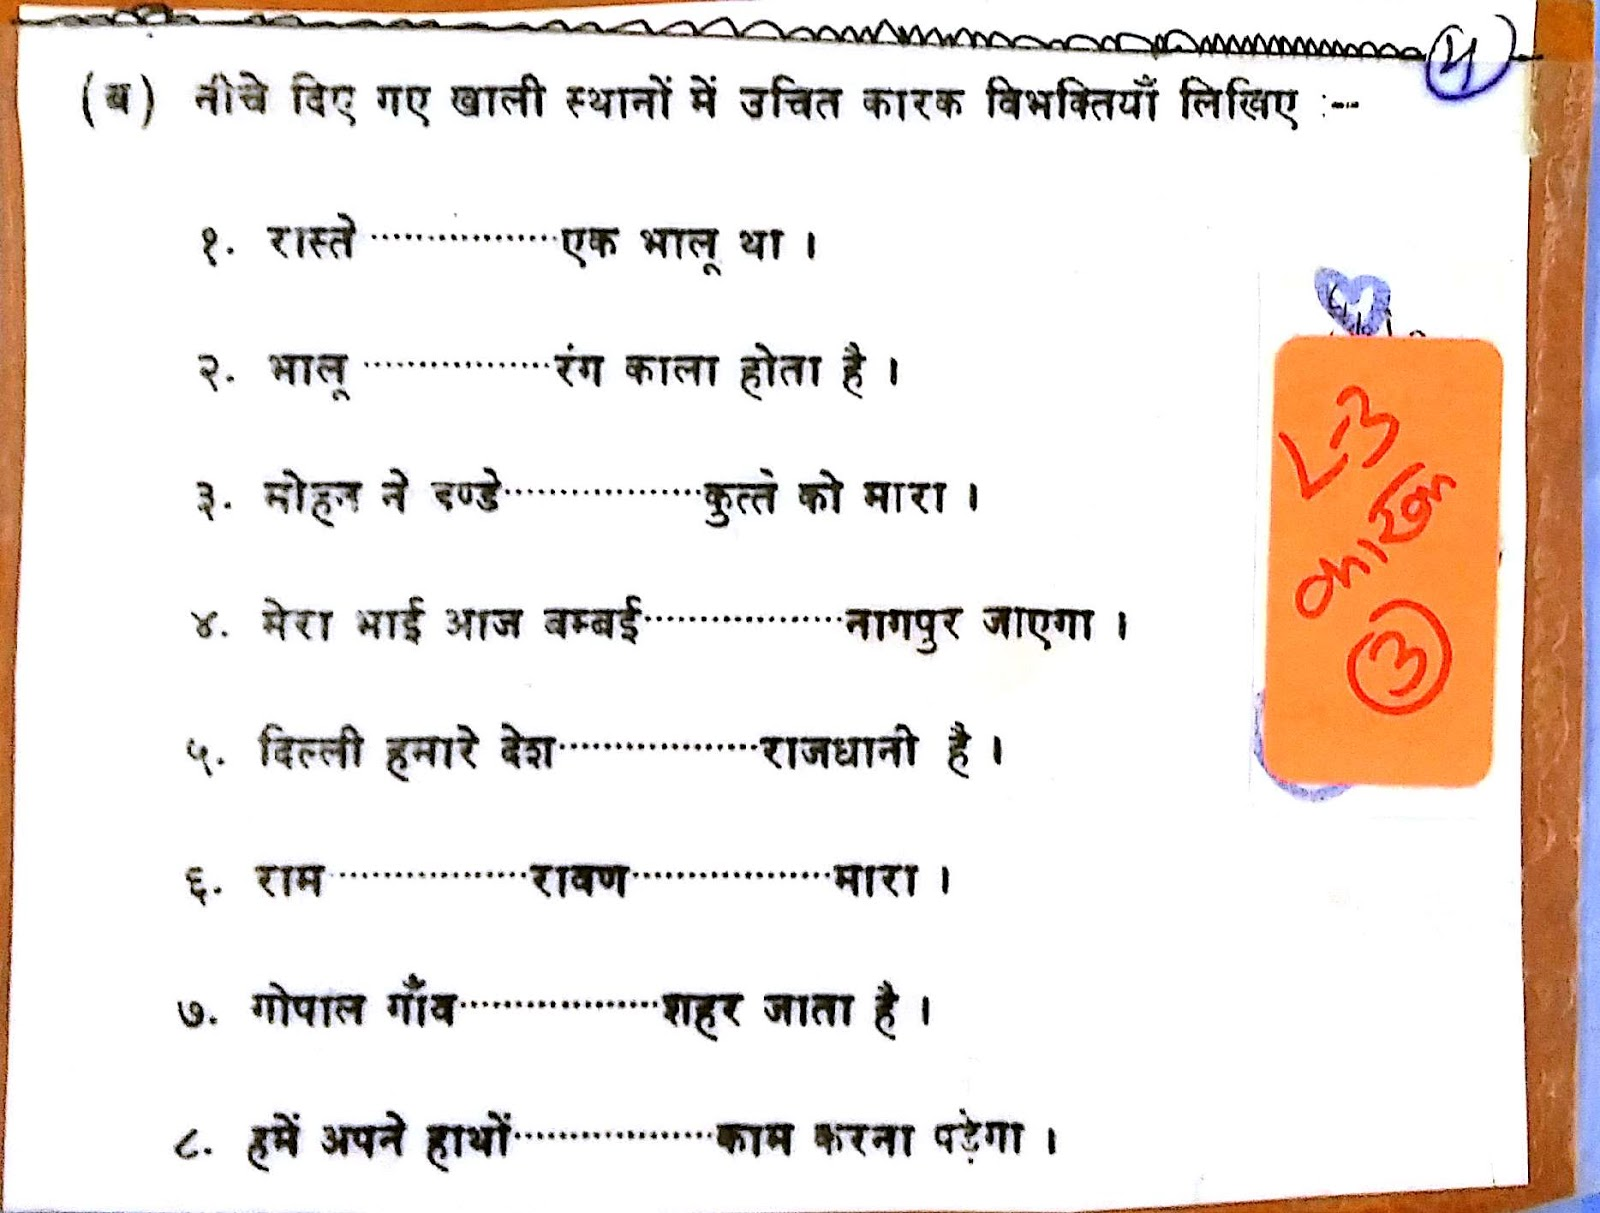 Hindi Grammar Work Sheet Collection For Classes 5 6 7 8 Cases Or Karak Work Sheets For Classes 5 6 7 And 8 With Solutions Answers [ 1213 x 1600 Pixel ]